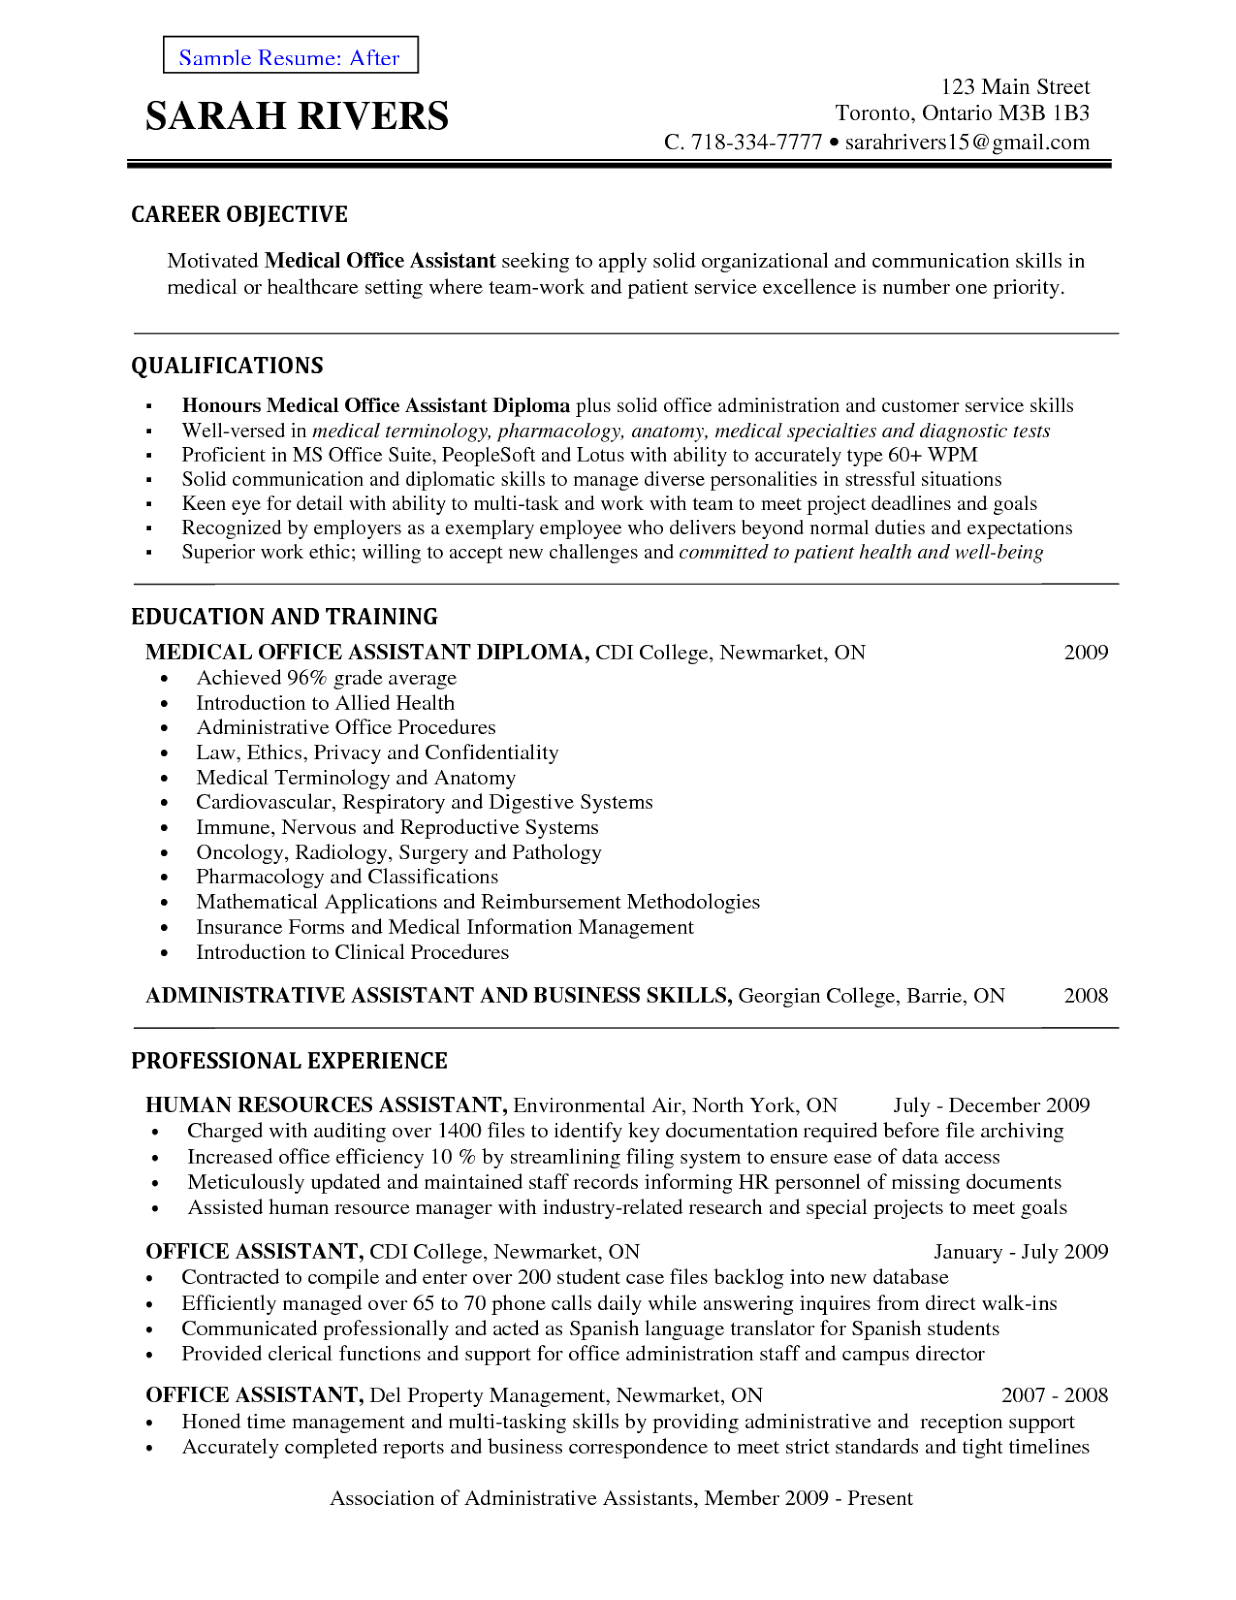 scholarship essay examples about career goals essay example millicent rogers museum